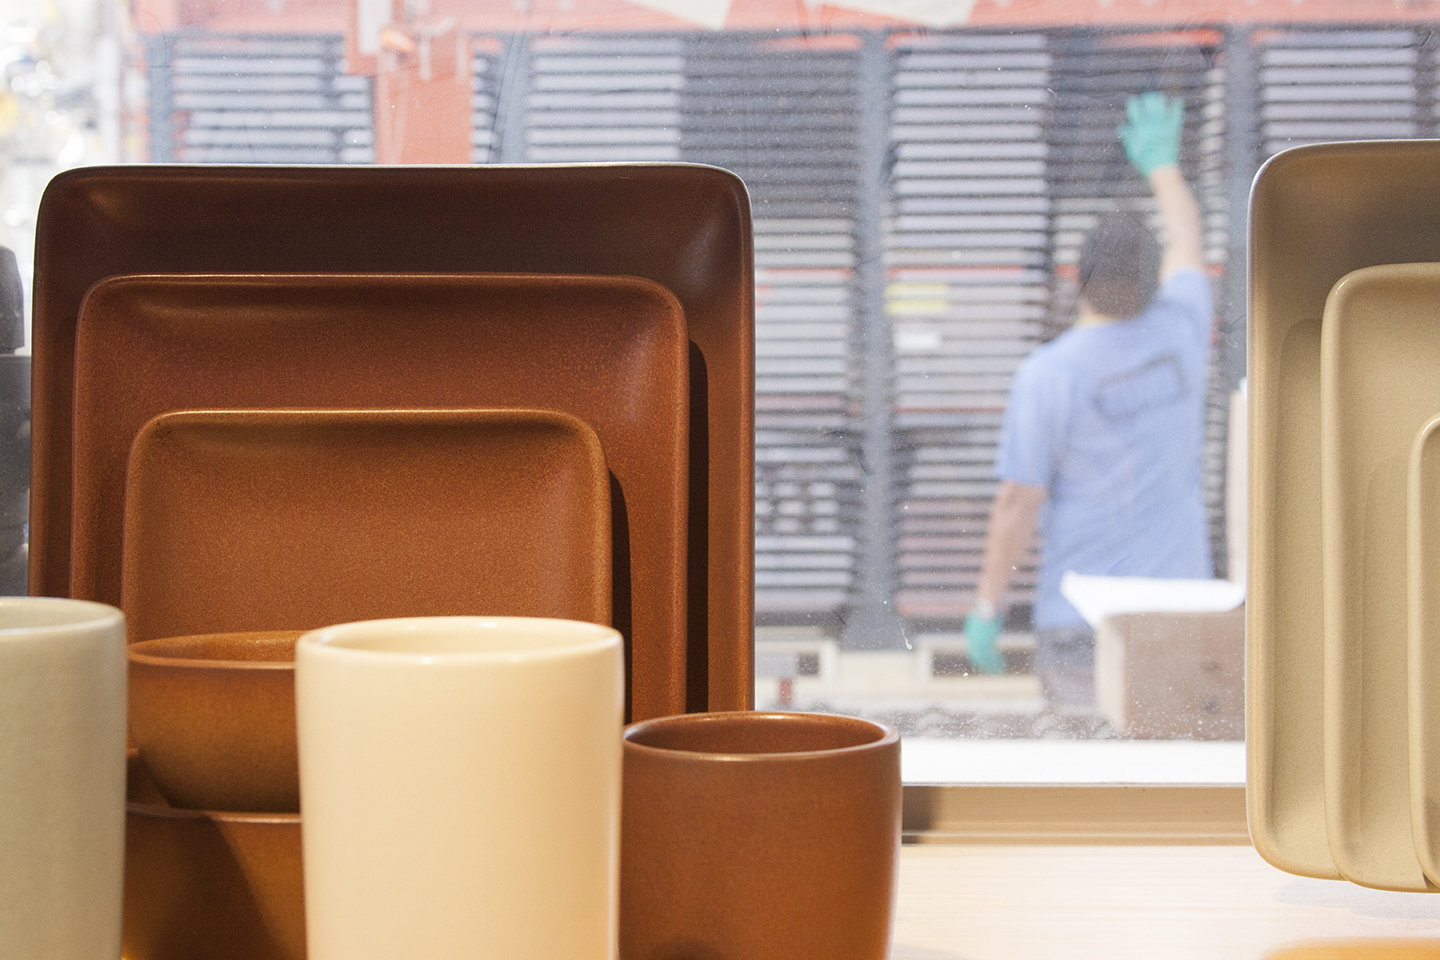 It's so fun to see the factory space through the windows behind the finished products.